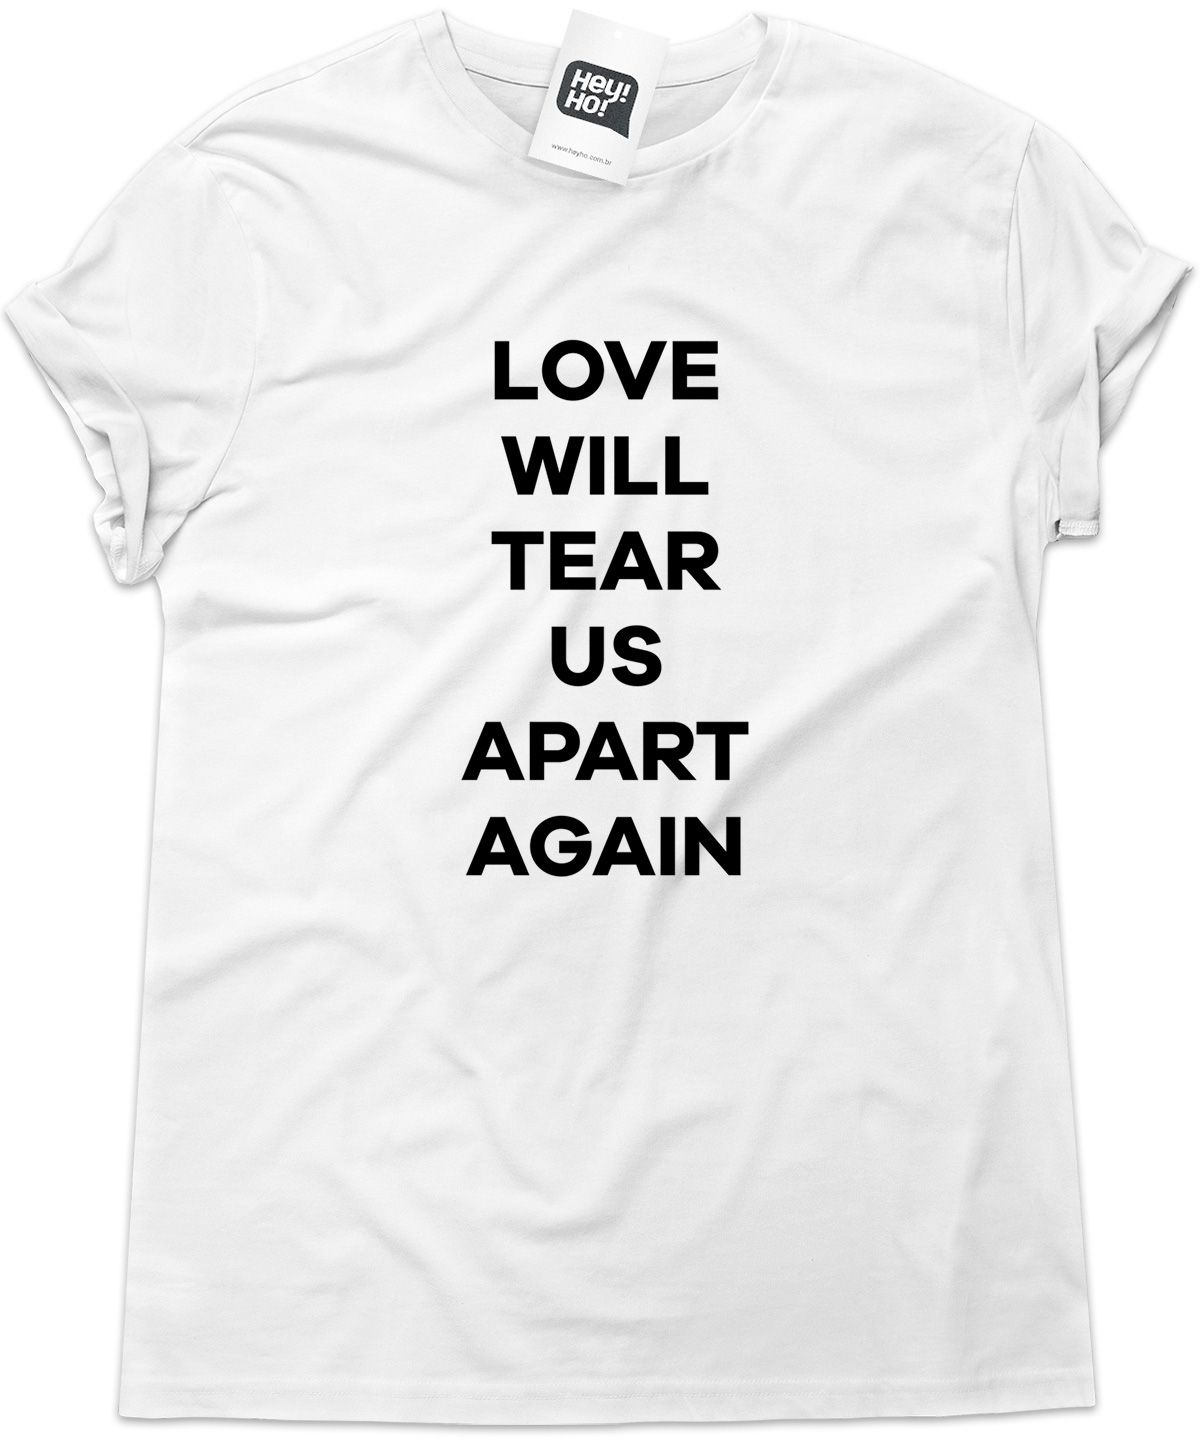 JOY DIVISION - Love will tear us apart again